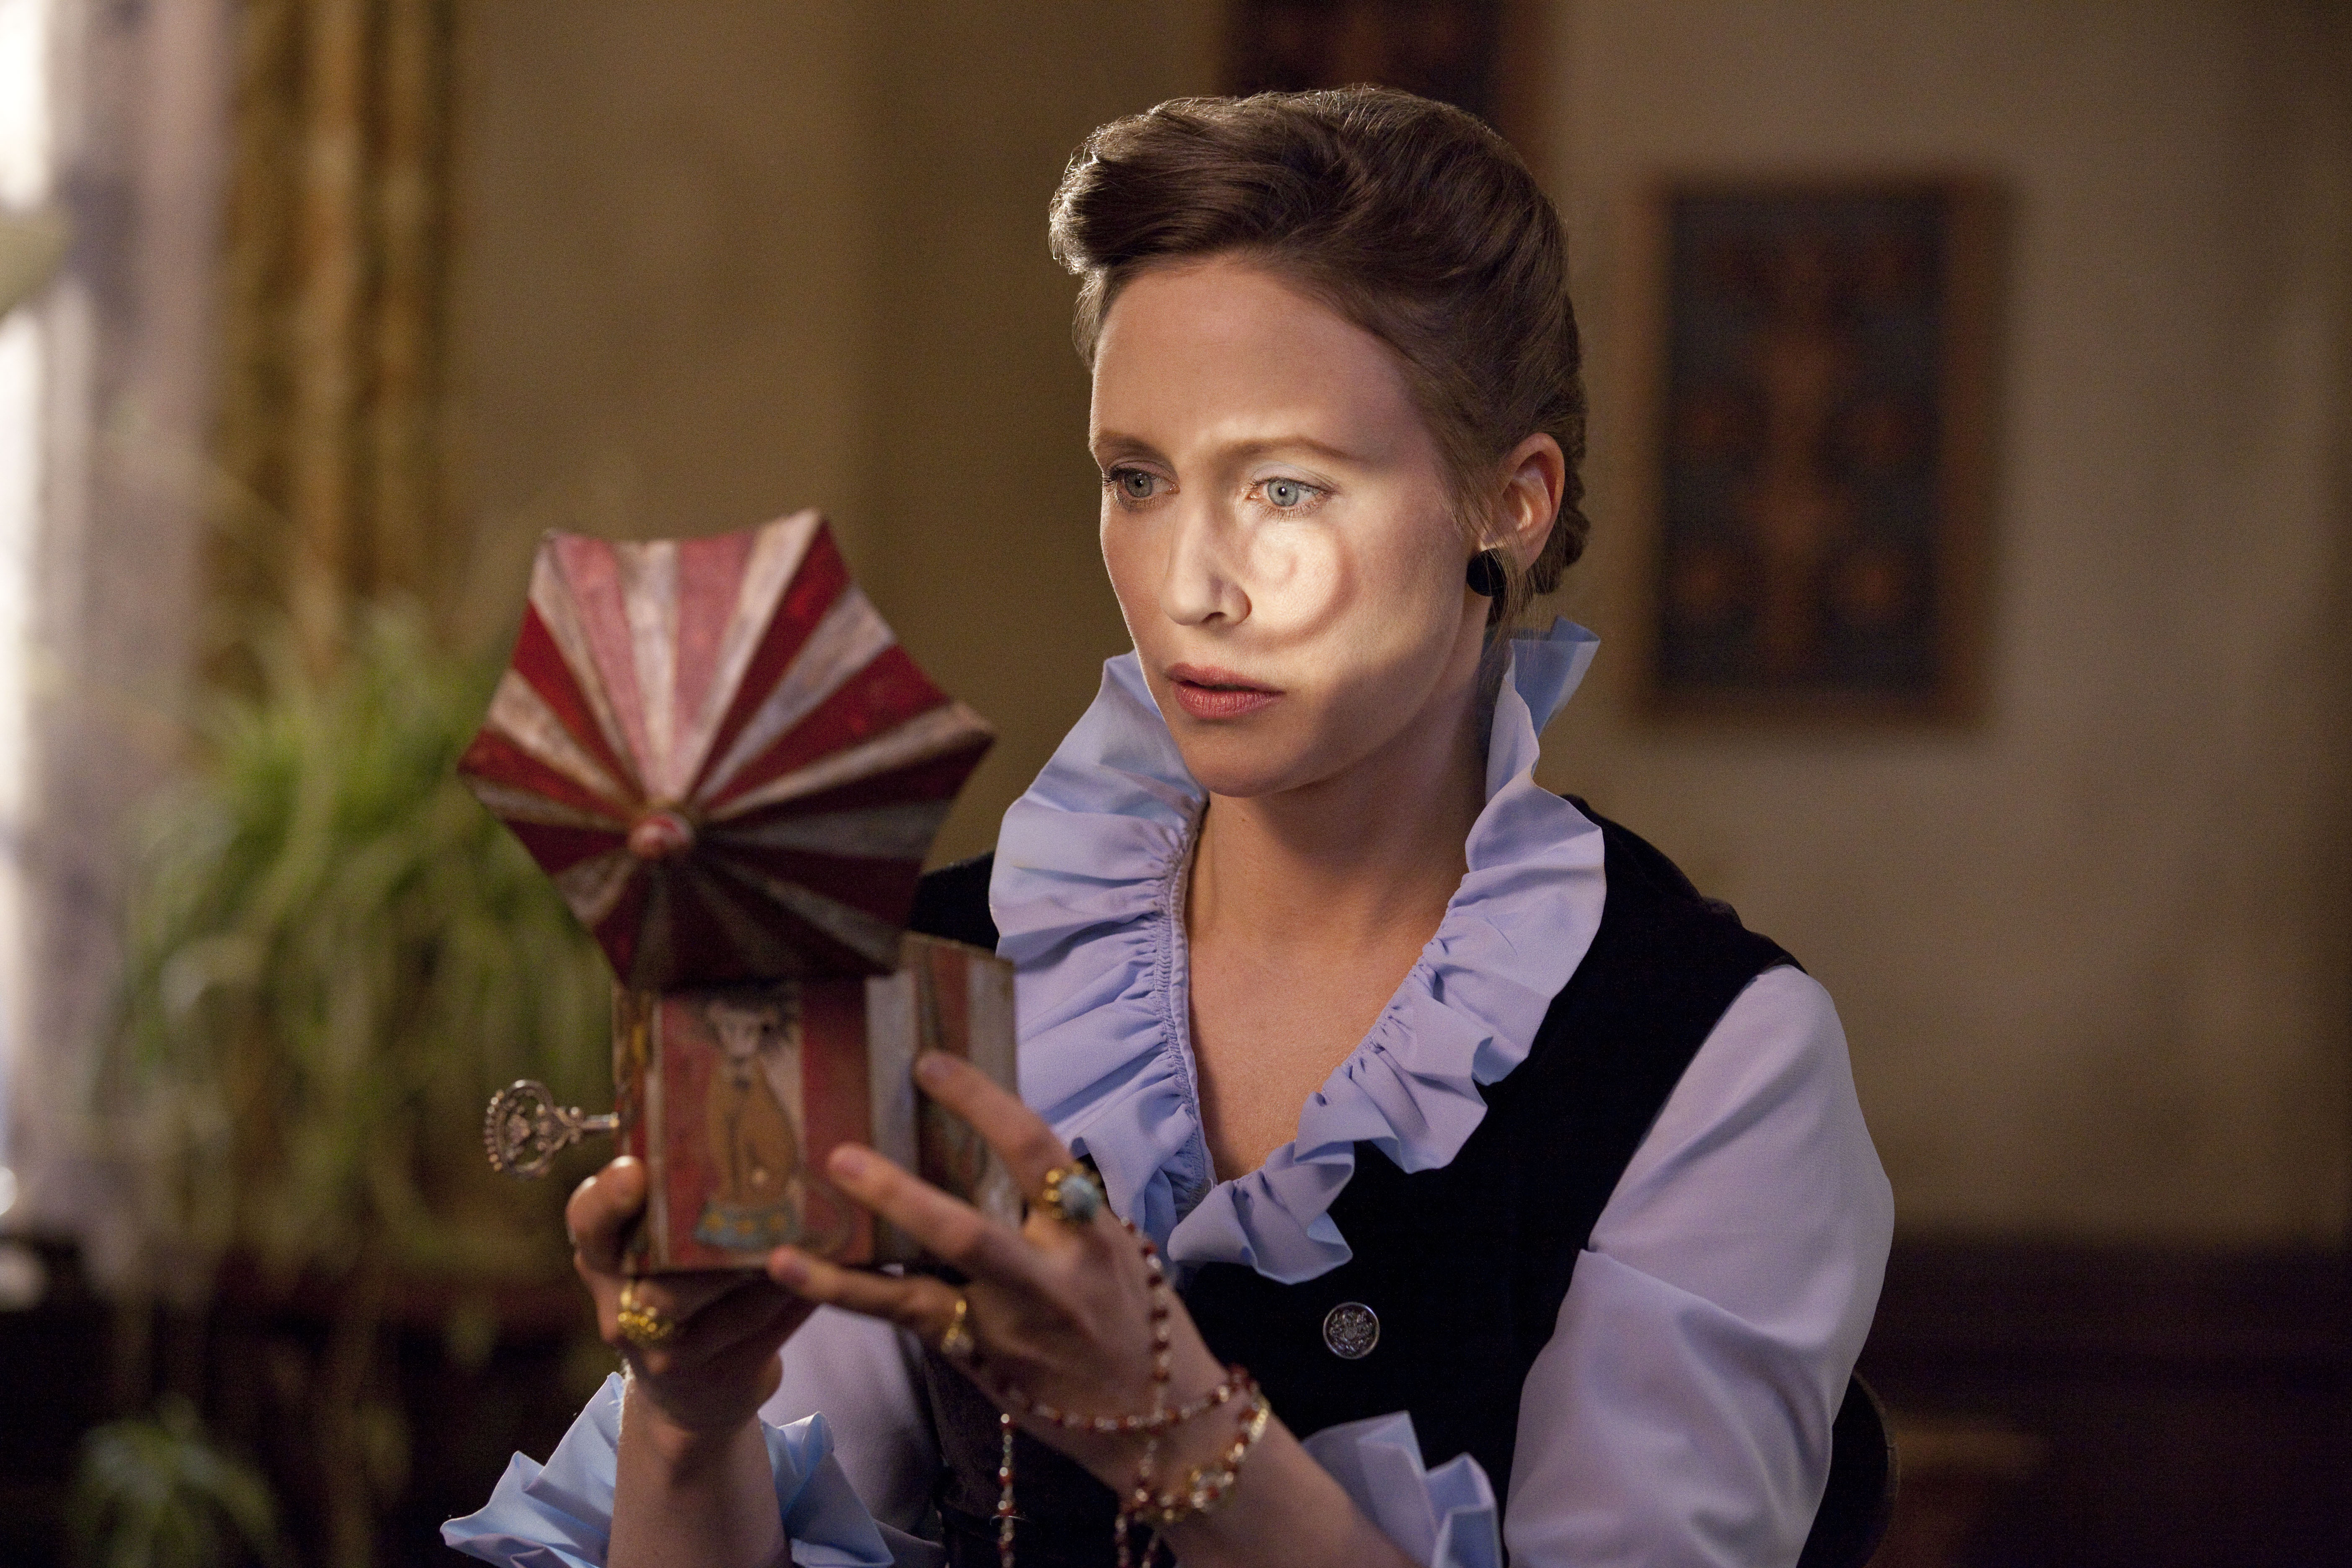 CJD 03158r New Stills From The Conjuring Released